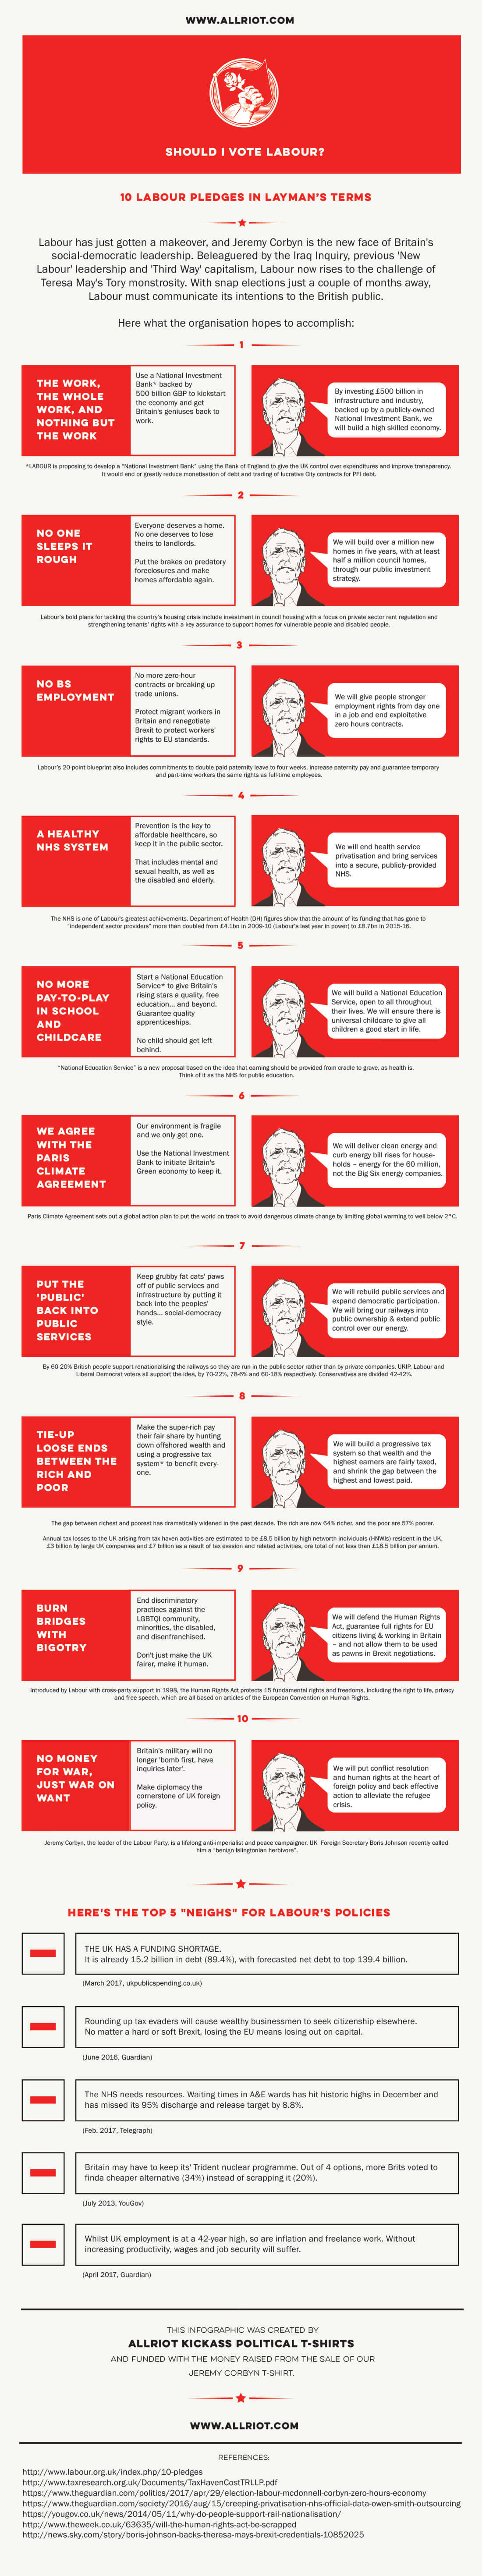 labour-party-pledges-2017-infographic-allriot